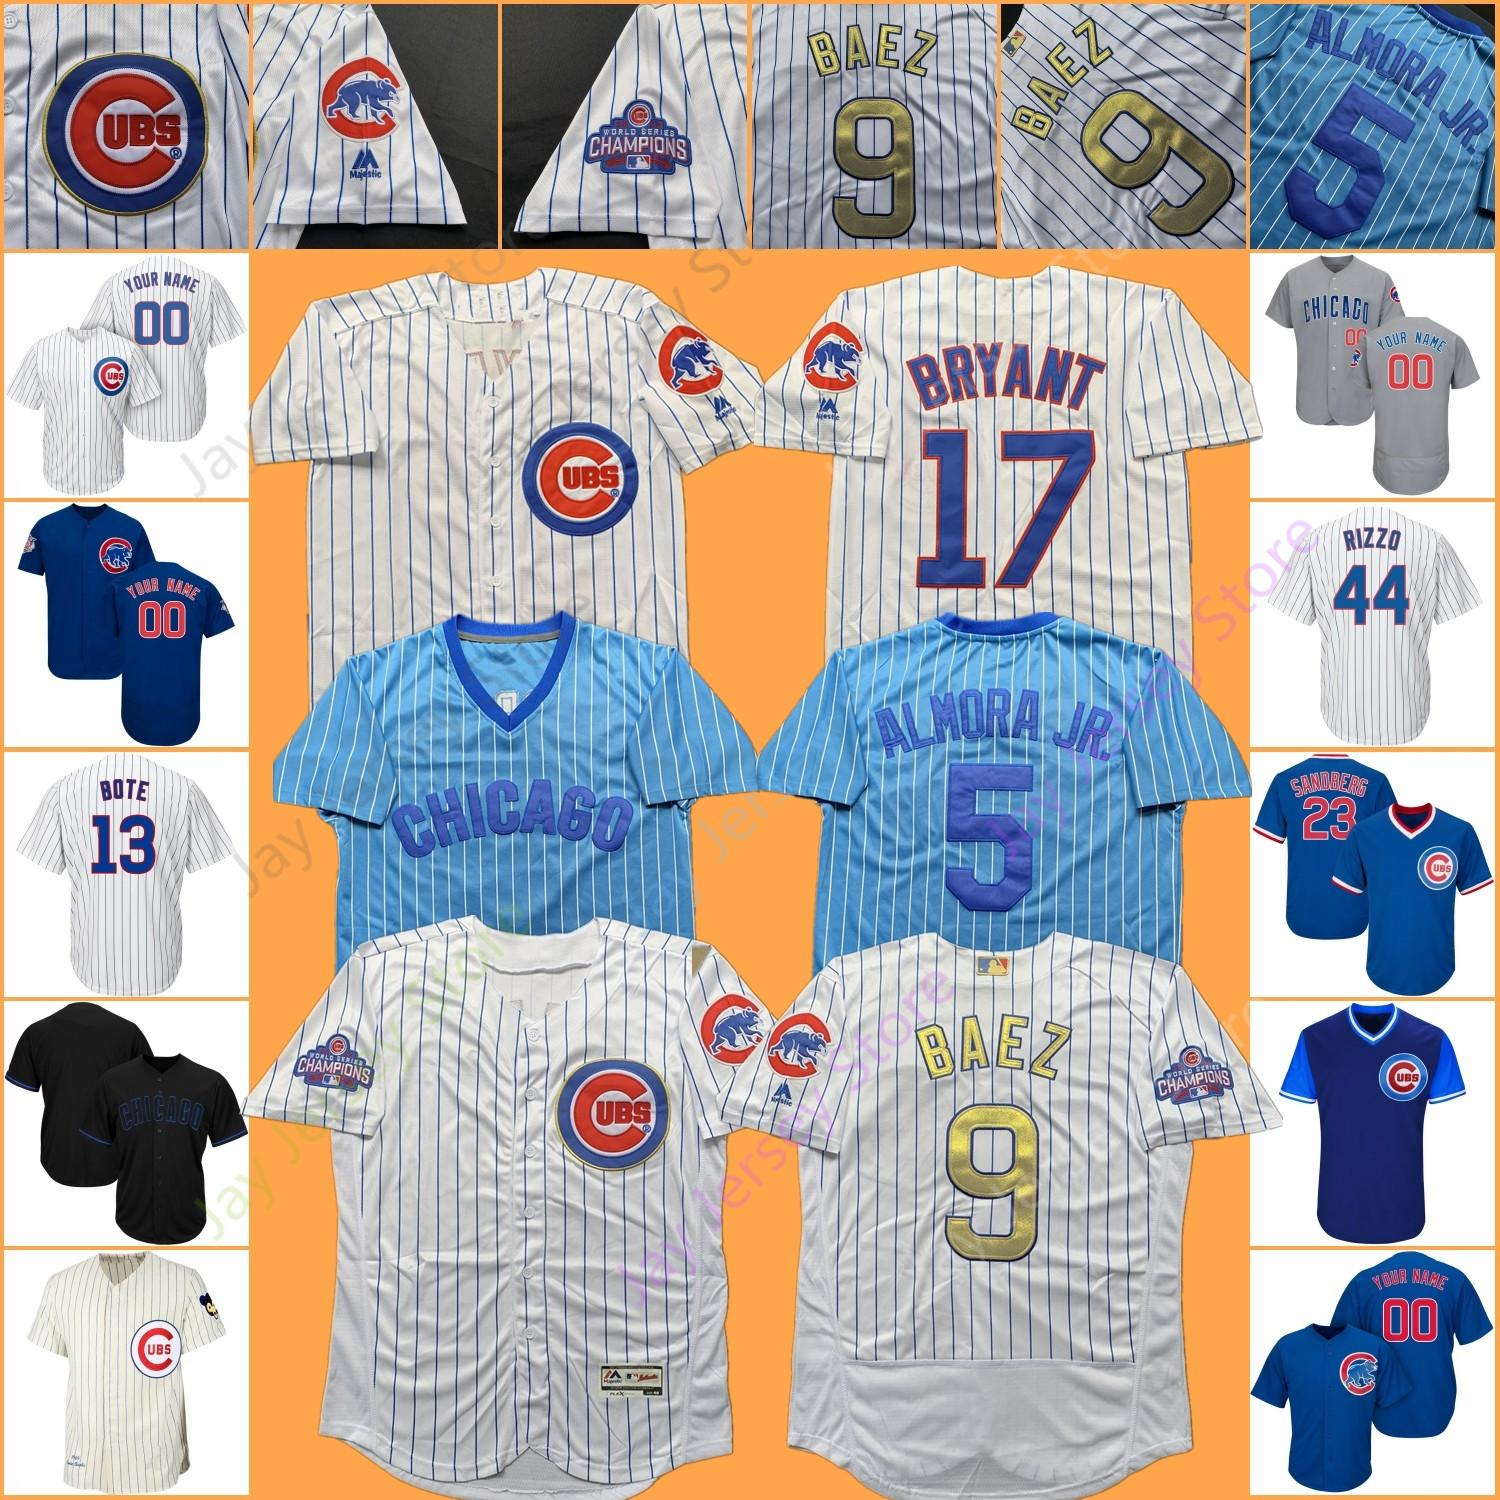 buy popular 150e8 28e4b Chicago Custom Cubs Jersey Javier Baez David Bote Kris Bryant Anthony Rizzo  Addison Russell Albert Almora Jr. Jason Heyward Kyle Schwarber